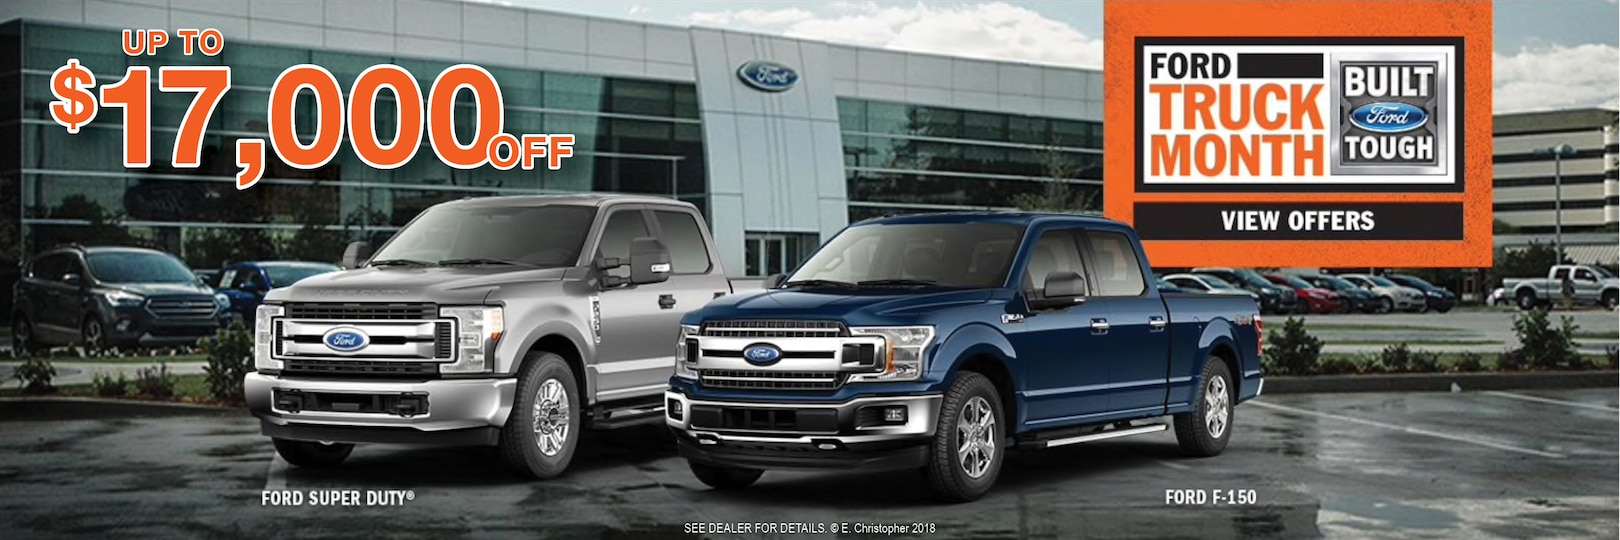 Victory Ford New Ford & Used Car Dealer in Kansas City, KS